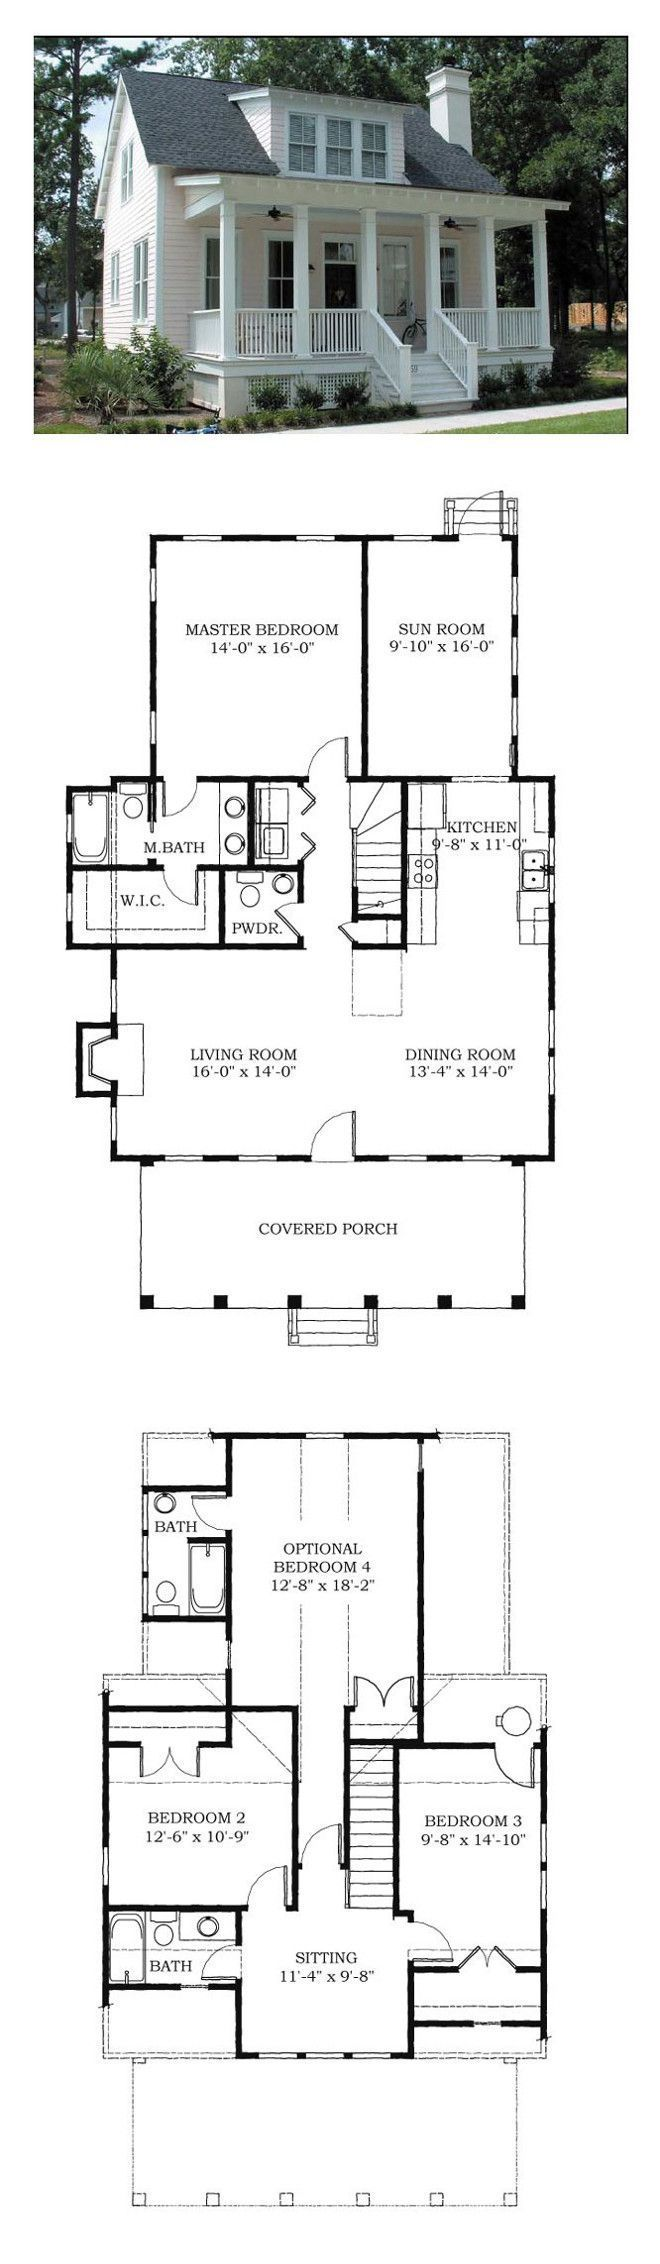 Super 17 Best Ideas About Tiny House Plans On Pinterest Small House Largest Home Design Picture Inspirations Pitcheantrous